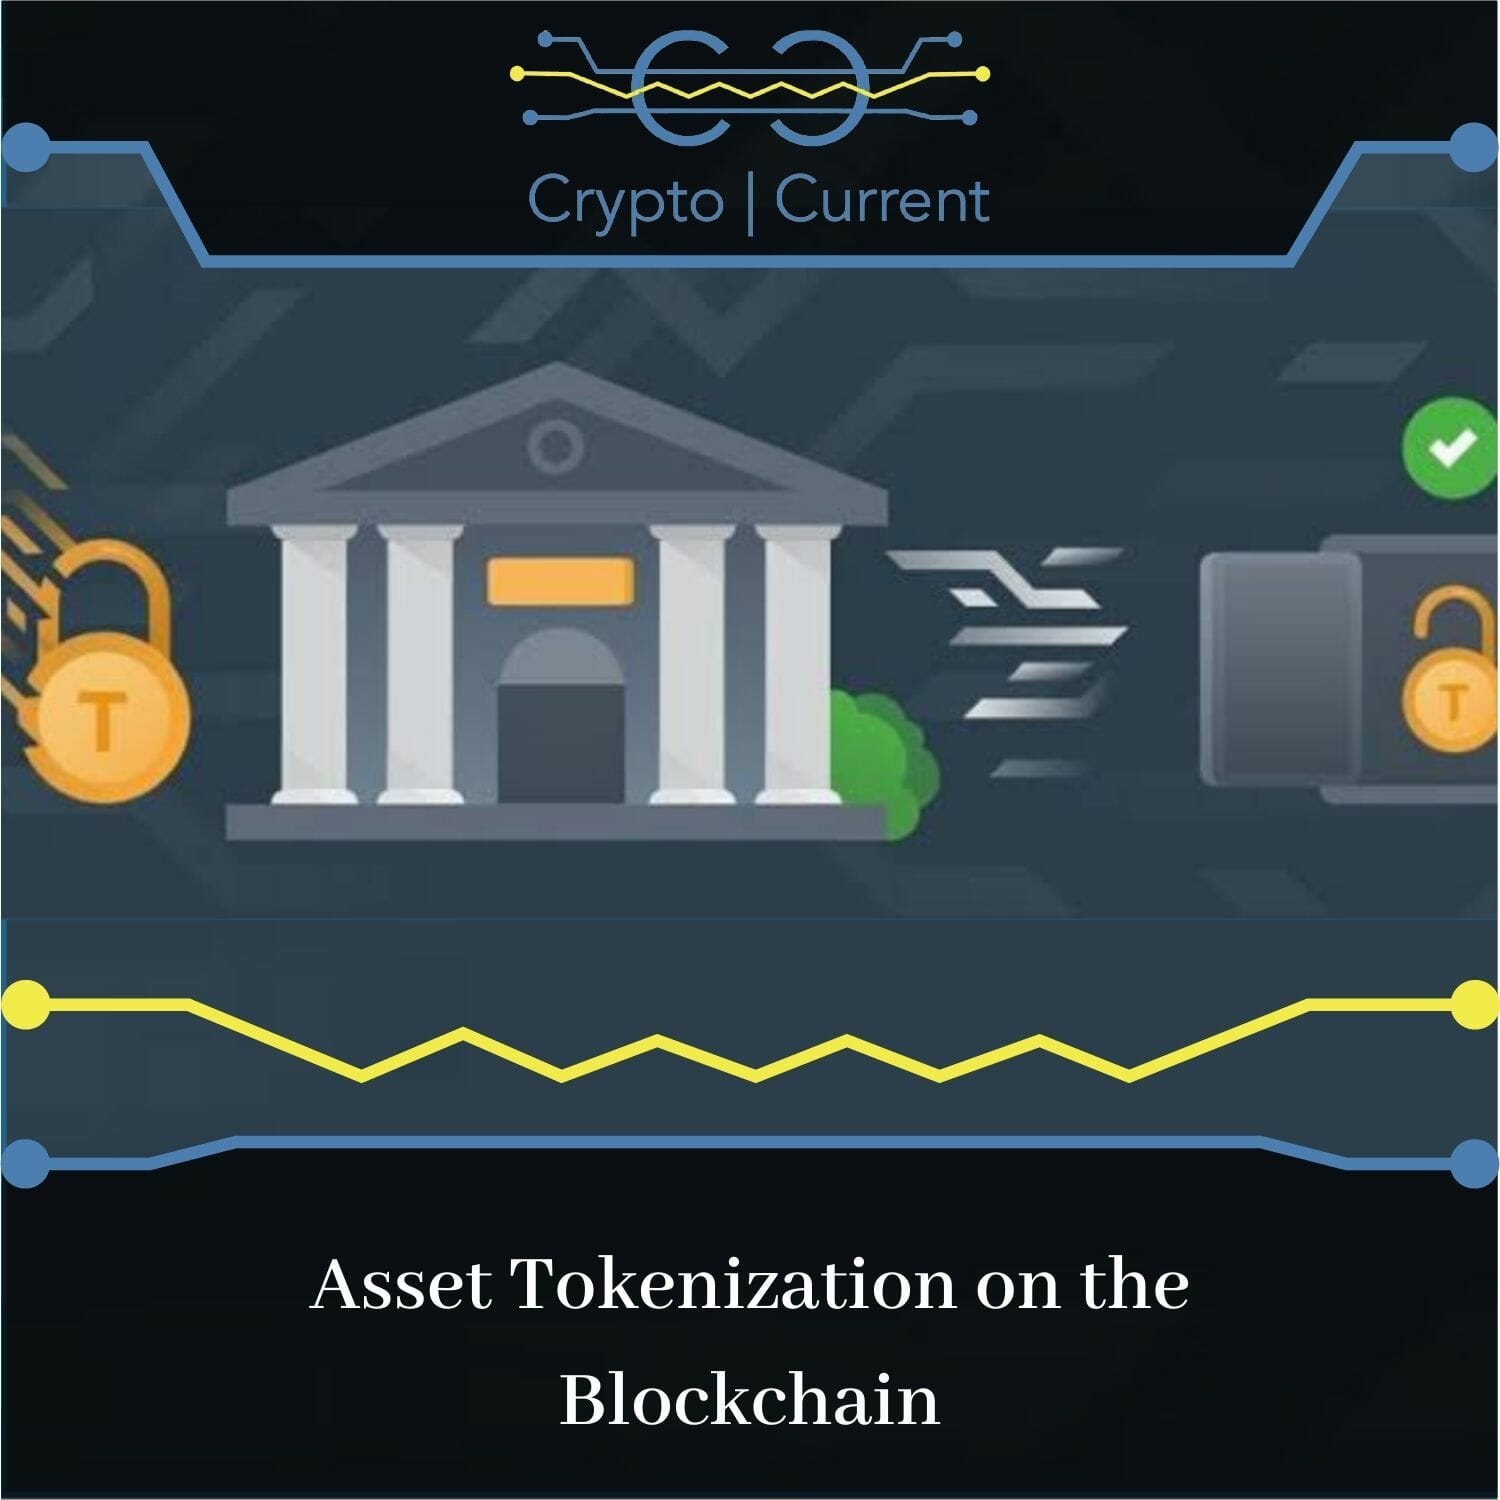 Asset Tokenization on the Blockchain